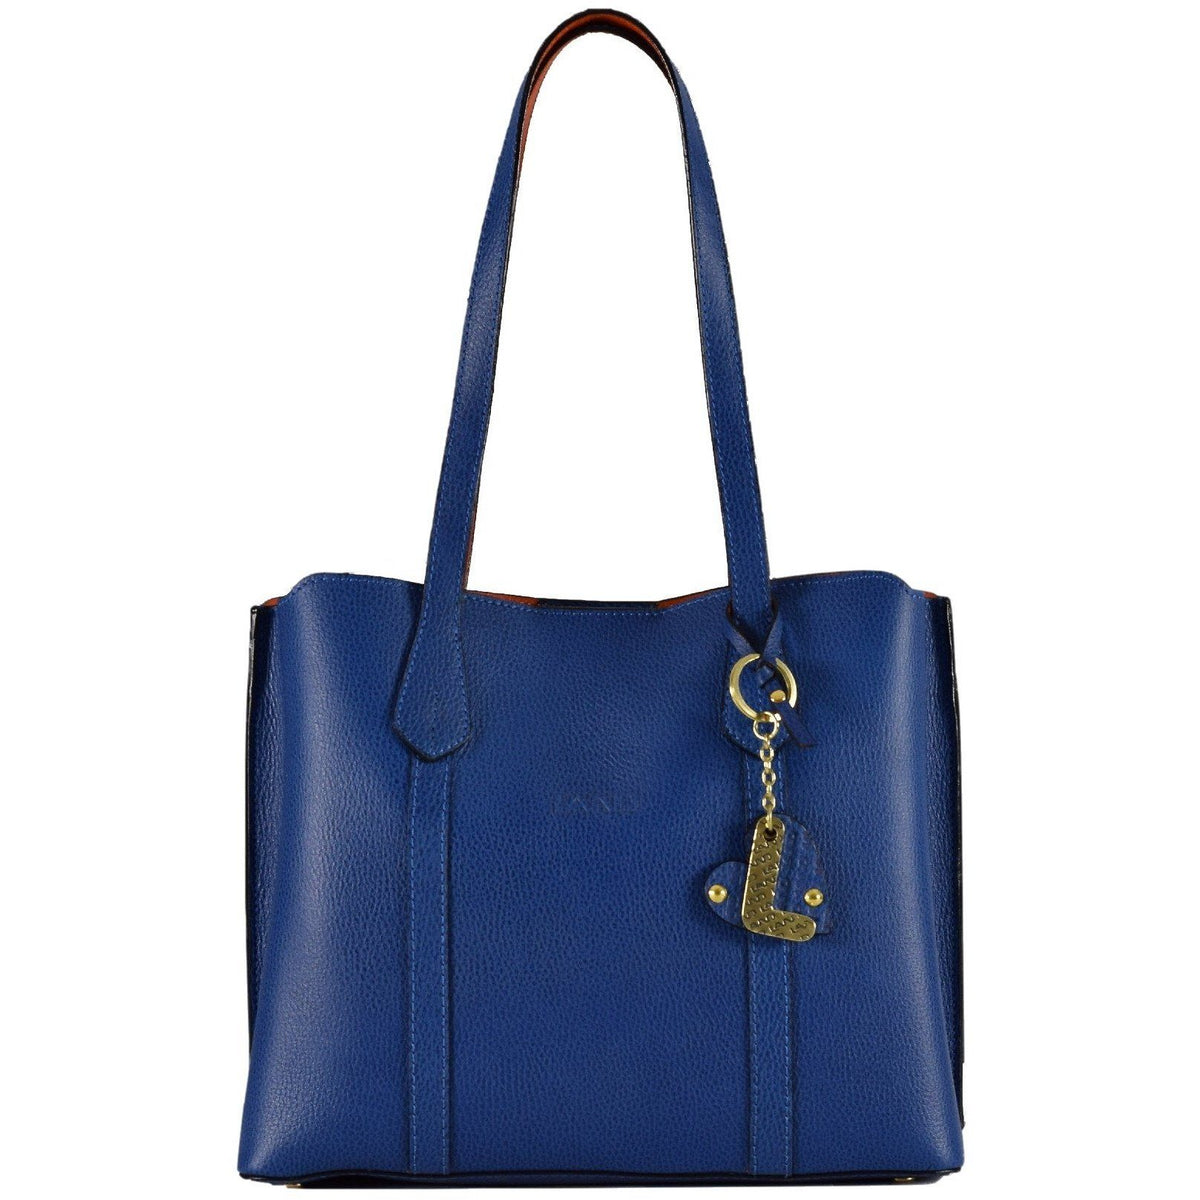 Bisenzio Molly Tote, Handbag | LAND Leather